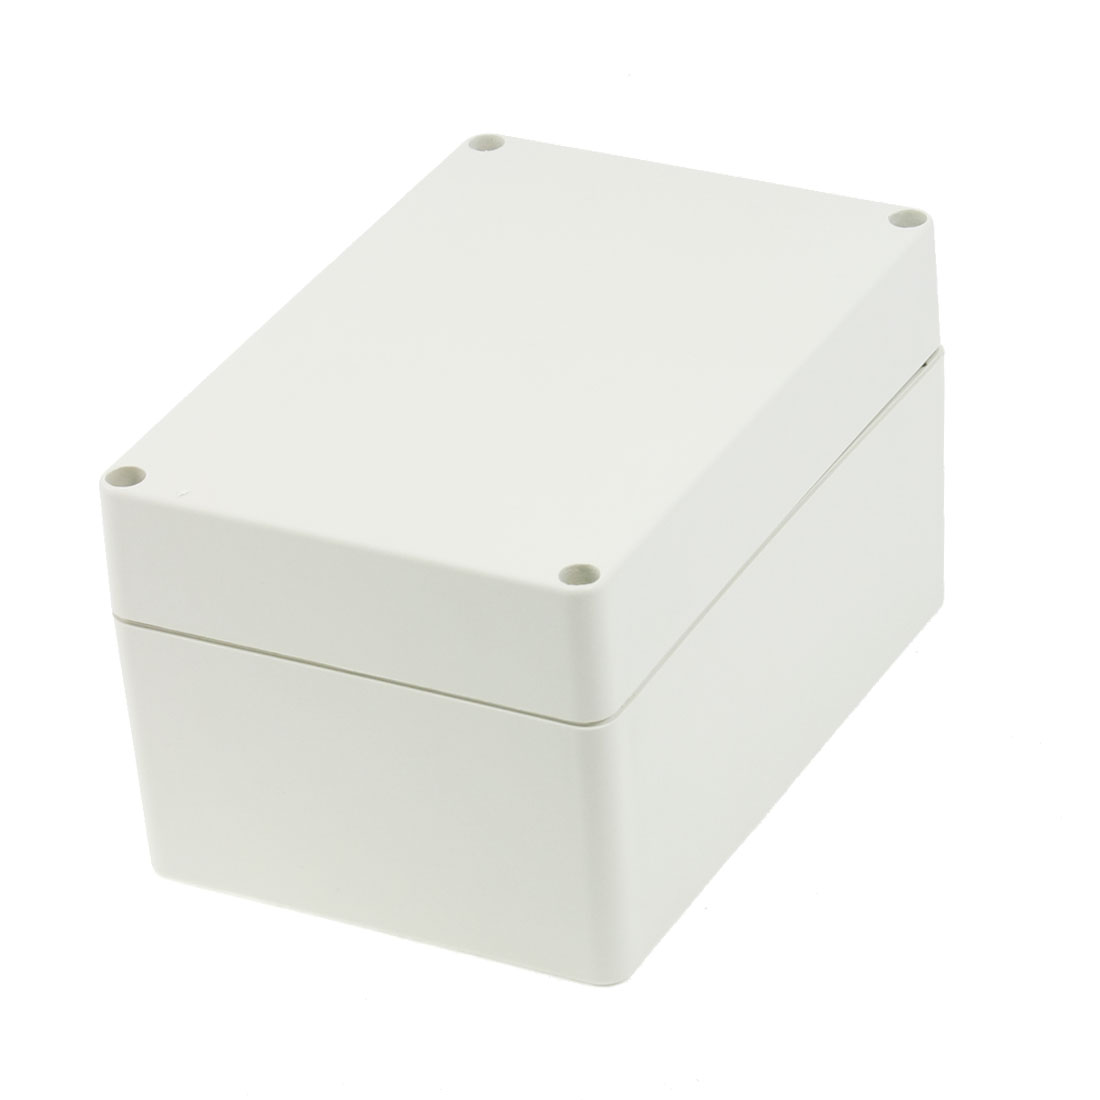 160mm x 110mm x 90mm Waterproof Plastic Enclosure Case DIY Junction Box